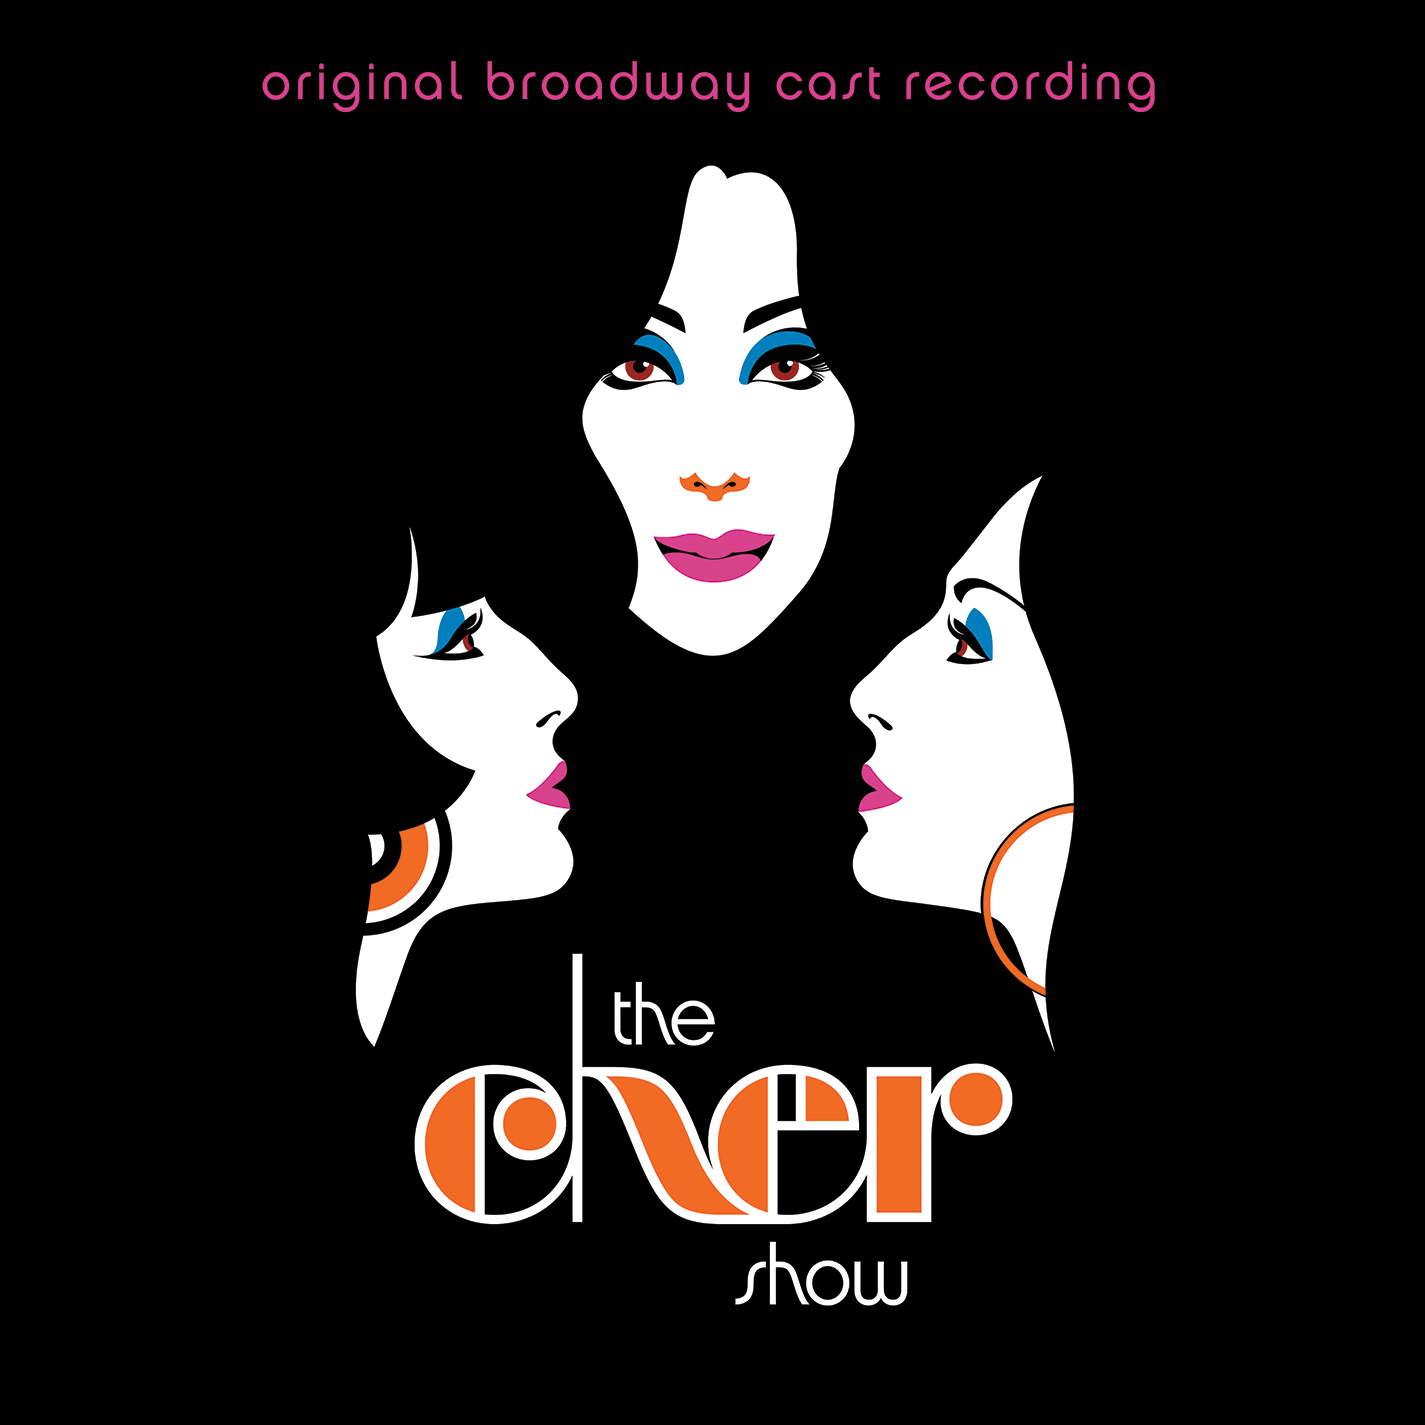 CHER SHOW (ORIGINAL BROADWAY CAST RECORDING)-CHER SHOW